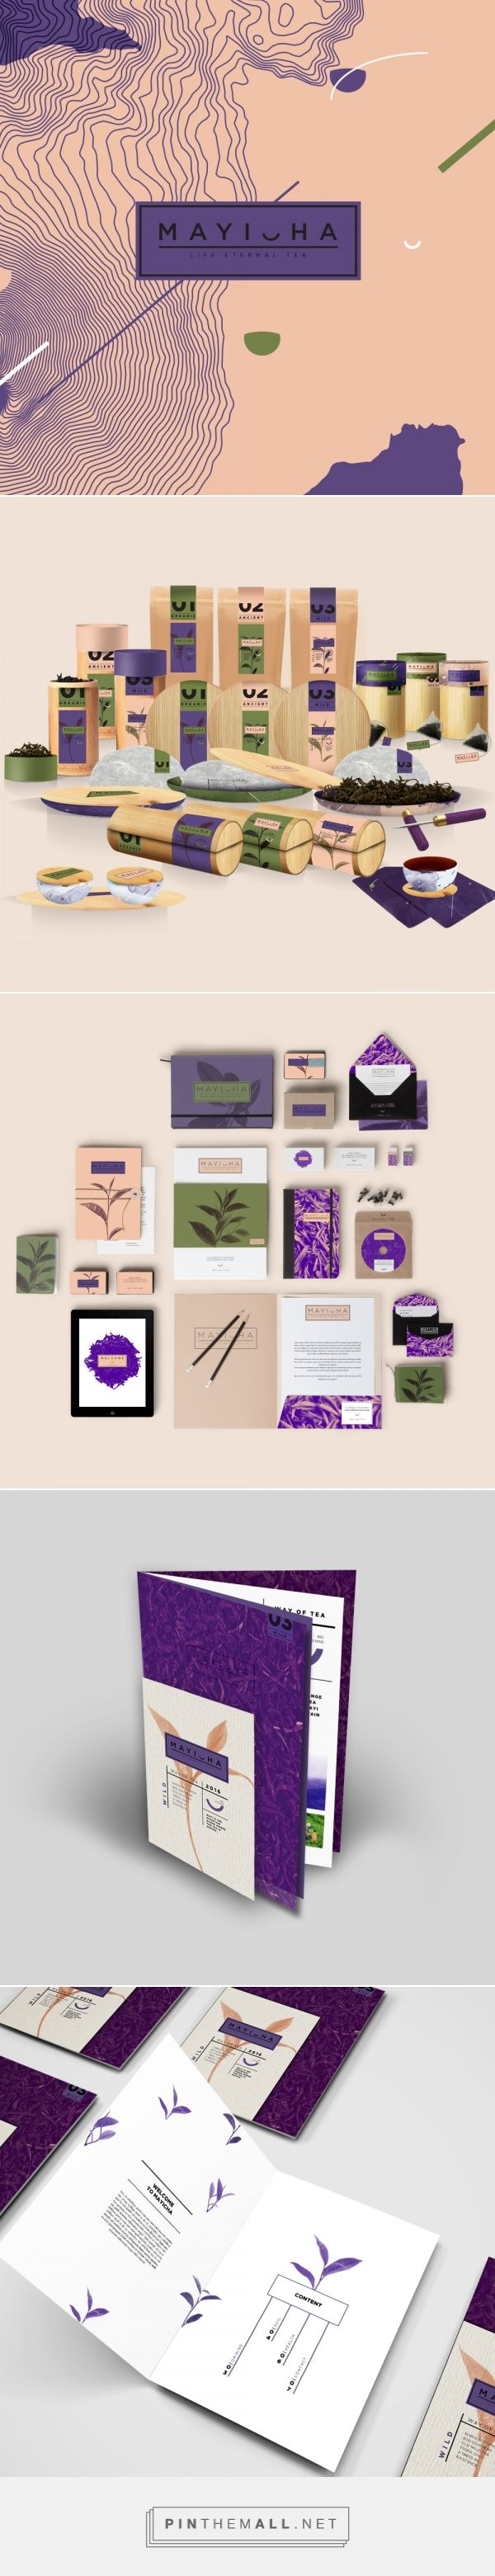 Mayicha Tea Branding and Packaging by Lucie Blazevska | Fivestar Branding Agency – Design and Branding Agency & Curated Inspiration Gallery